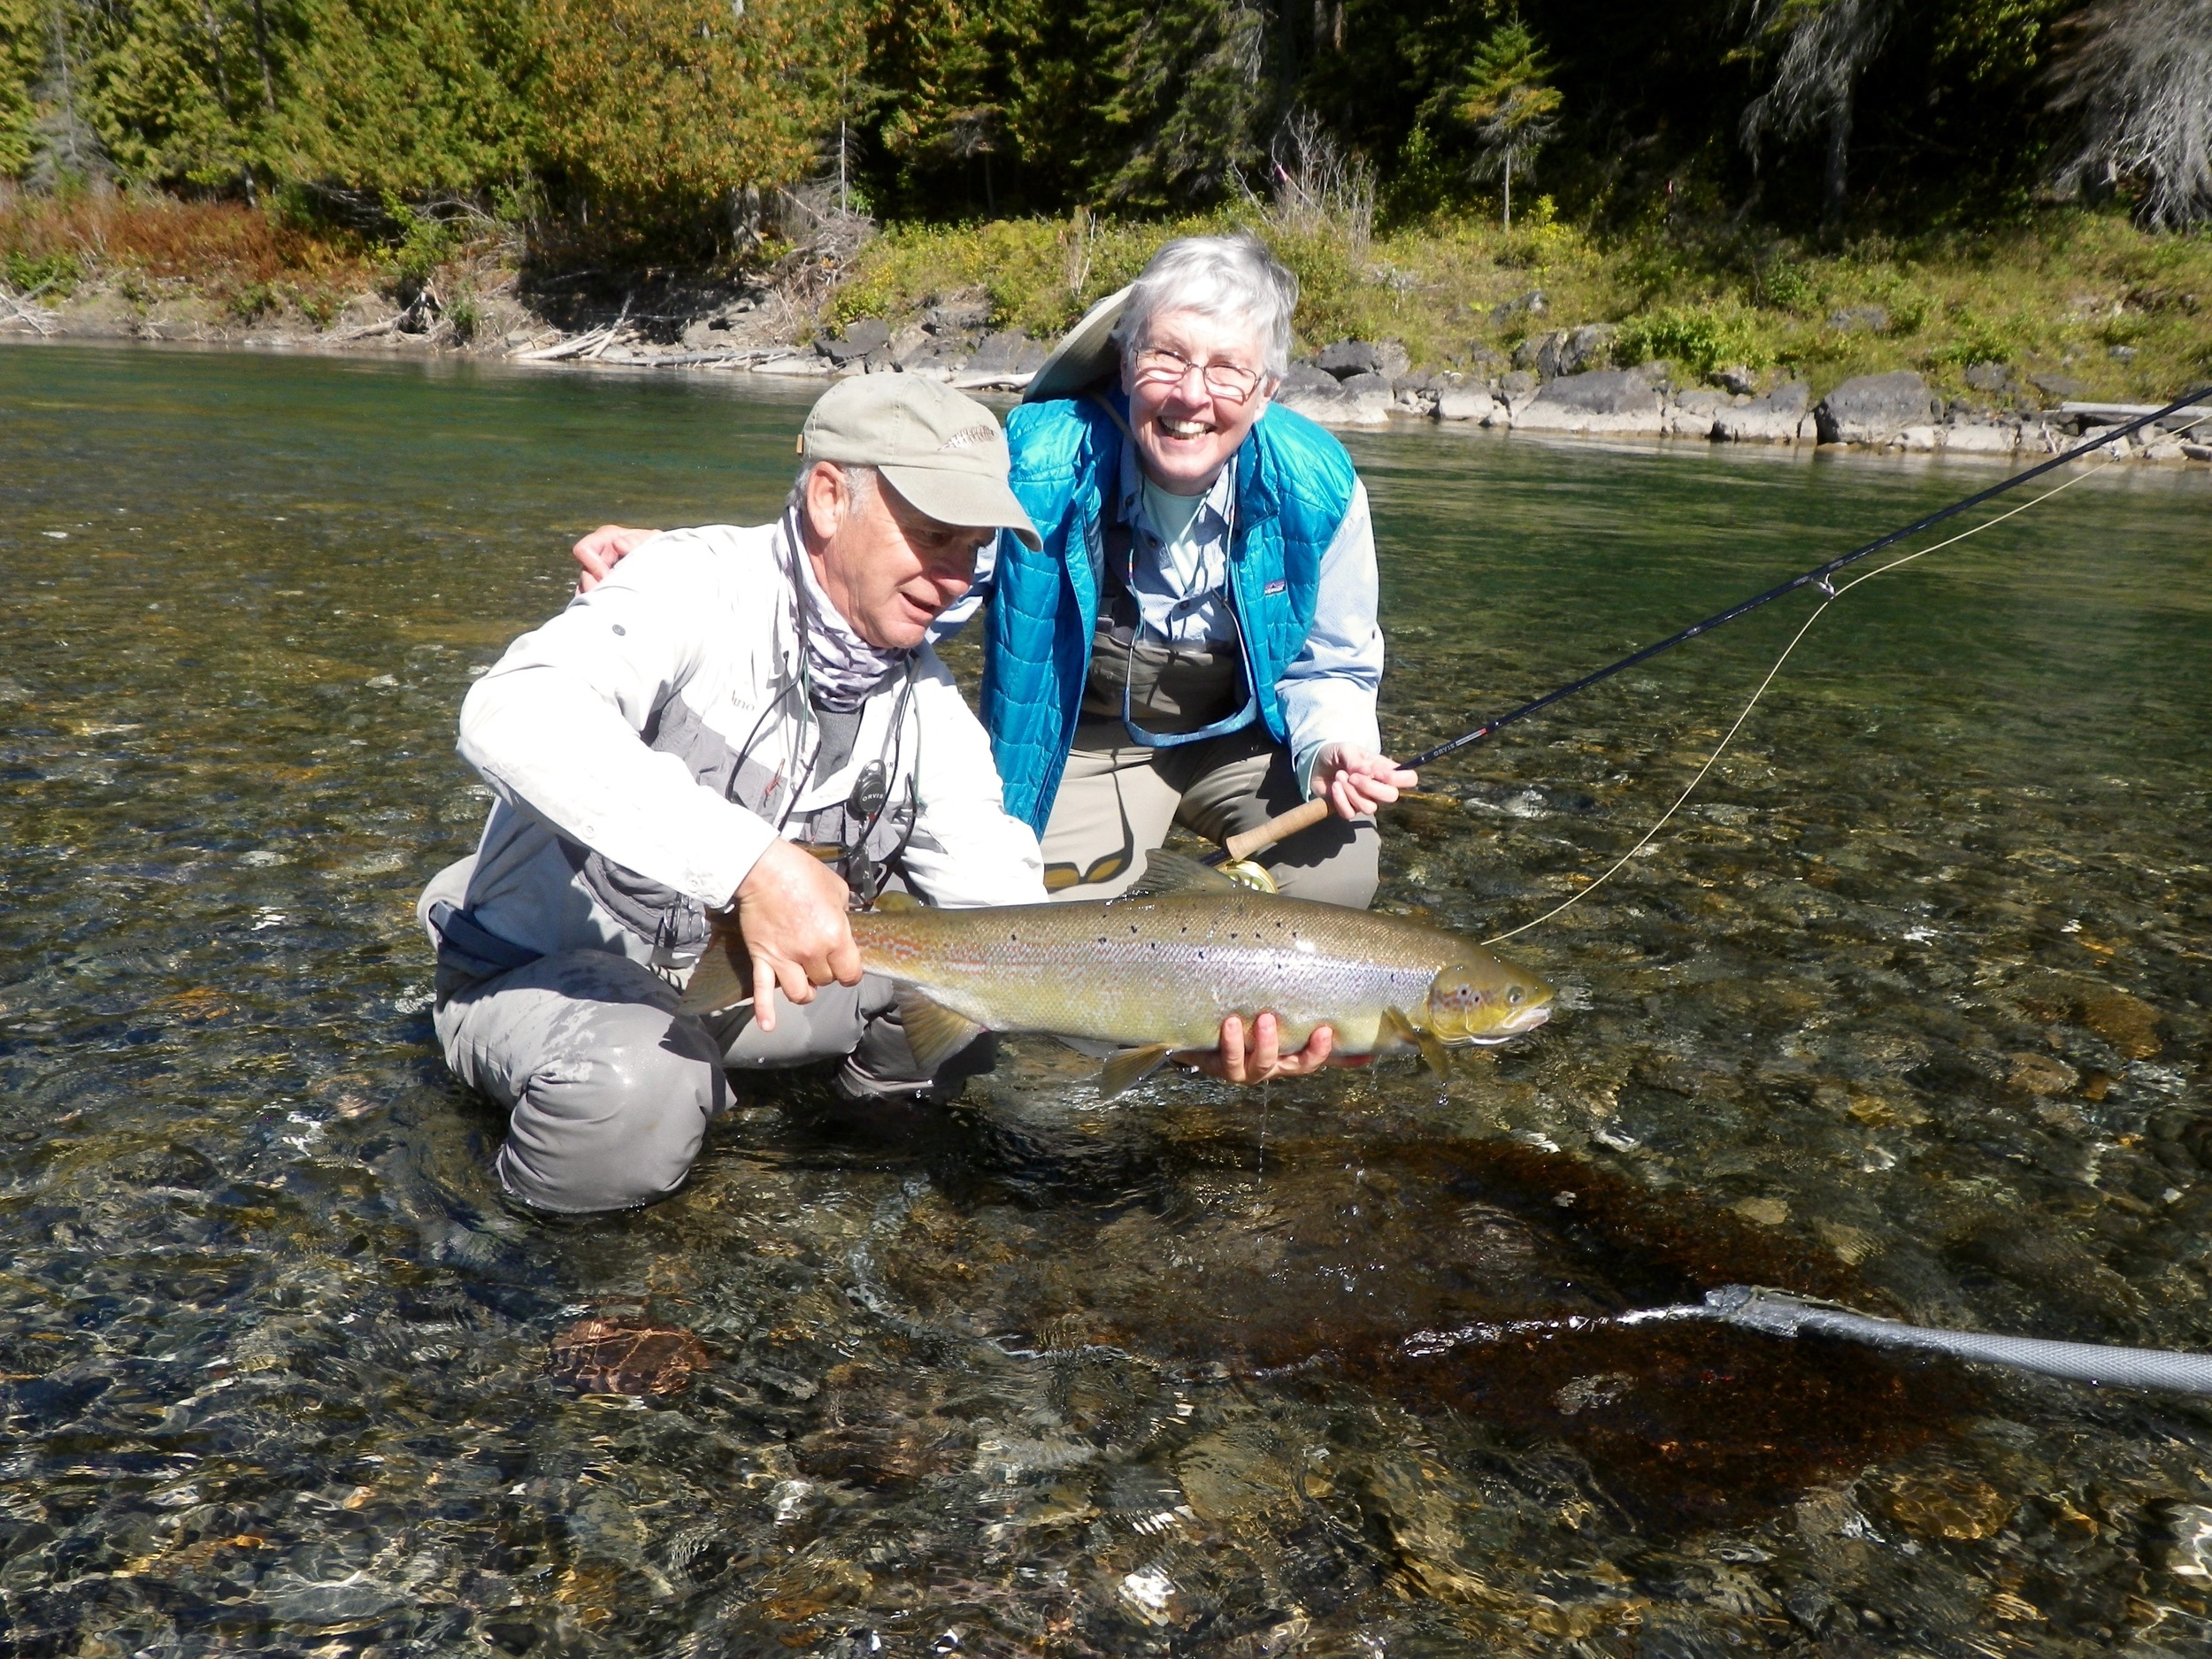 Julie Tallman told me that if she caught just one salmon her trip would have been a success, she caught many!!! Julie with Camp Bonaventure guide Bruno Lepage, Congratulations Julie.